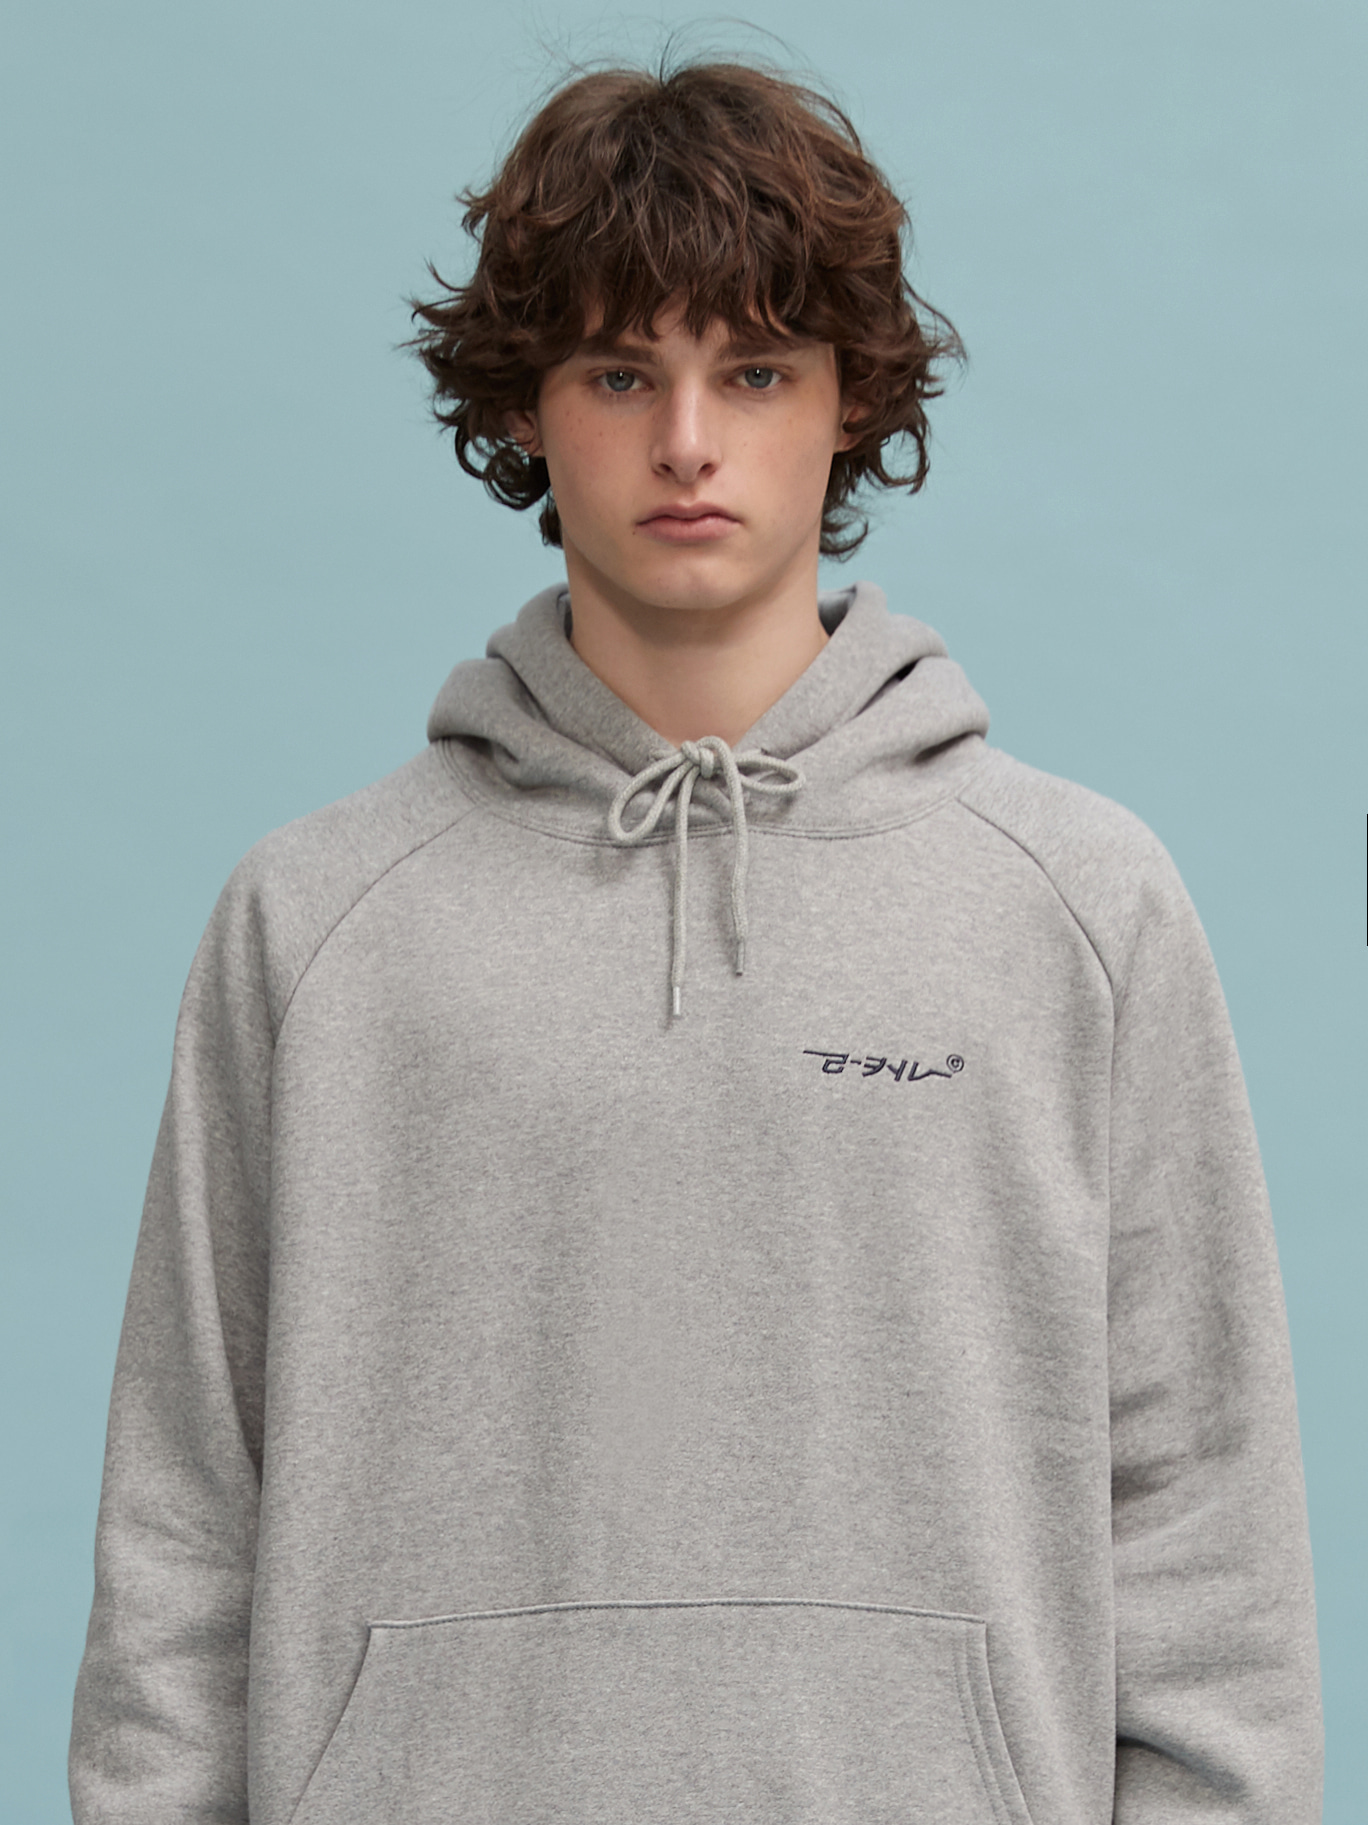 new RC hoody (gray)